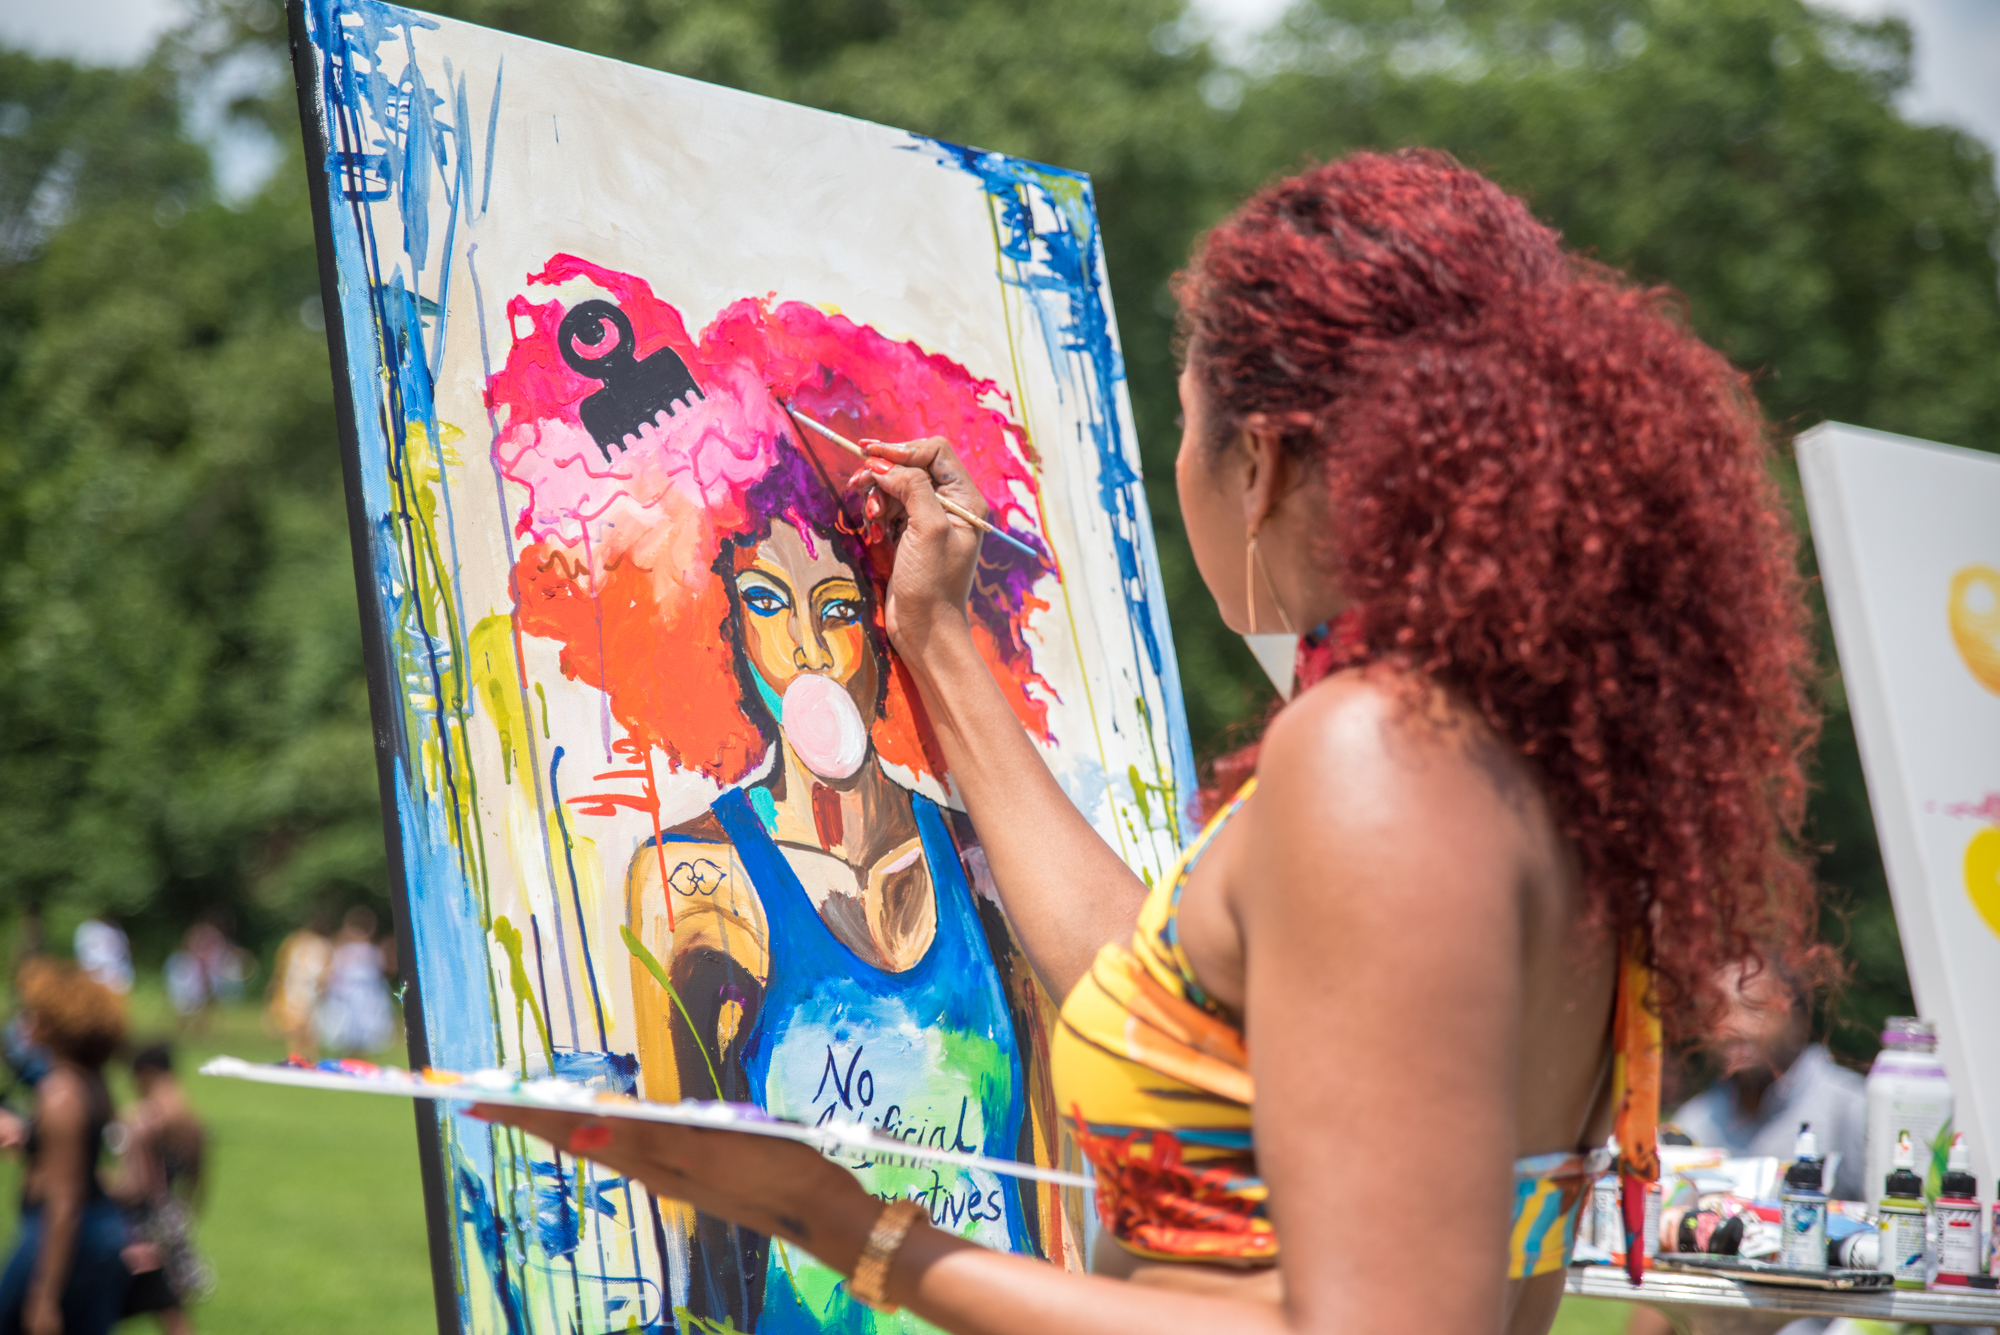 Arts District - Watch paintings come to life, and win one via silent auction!